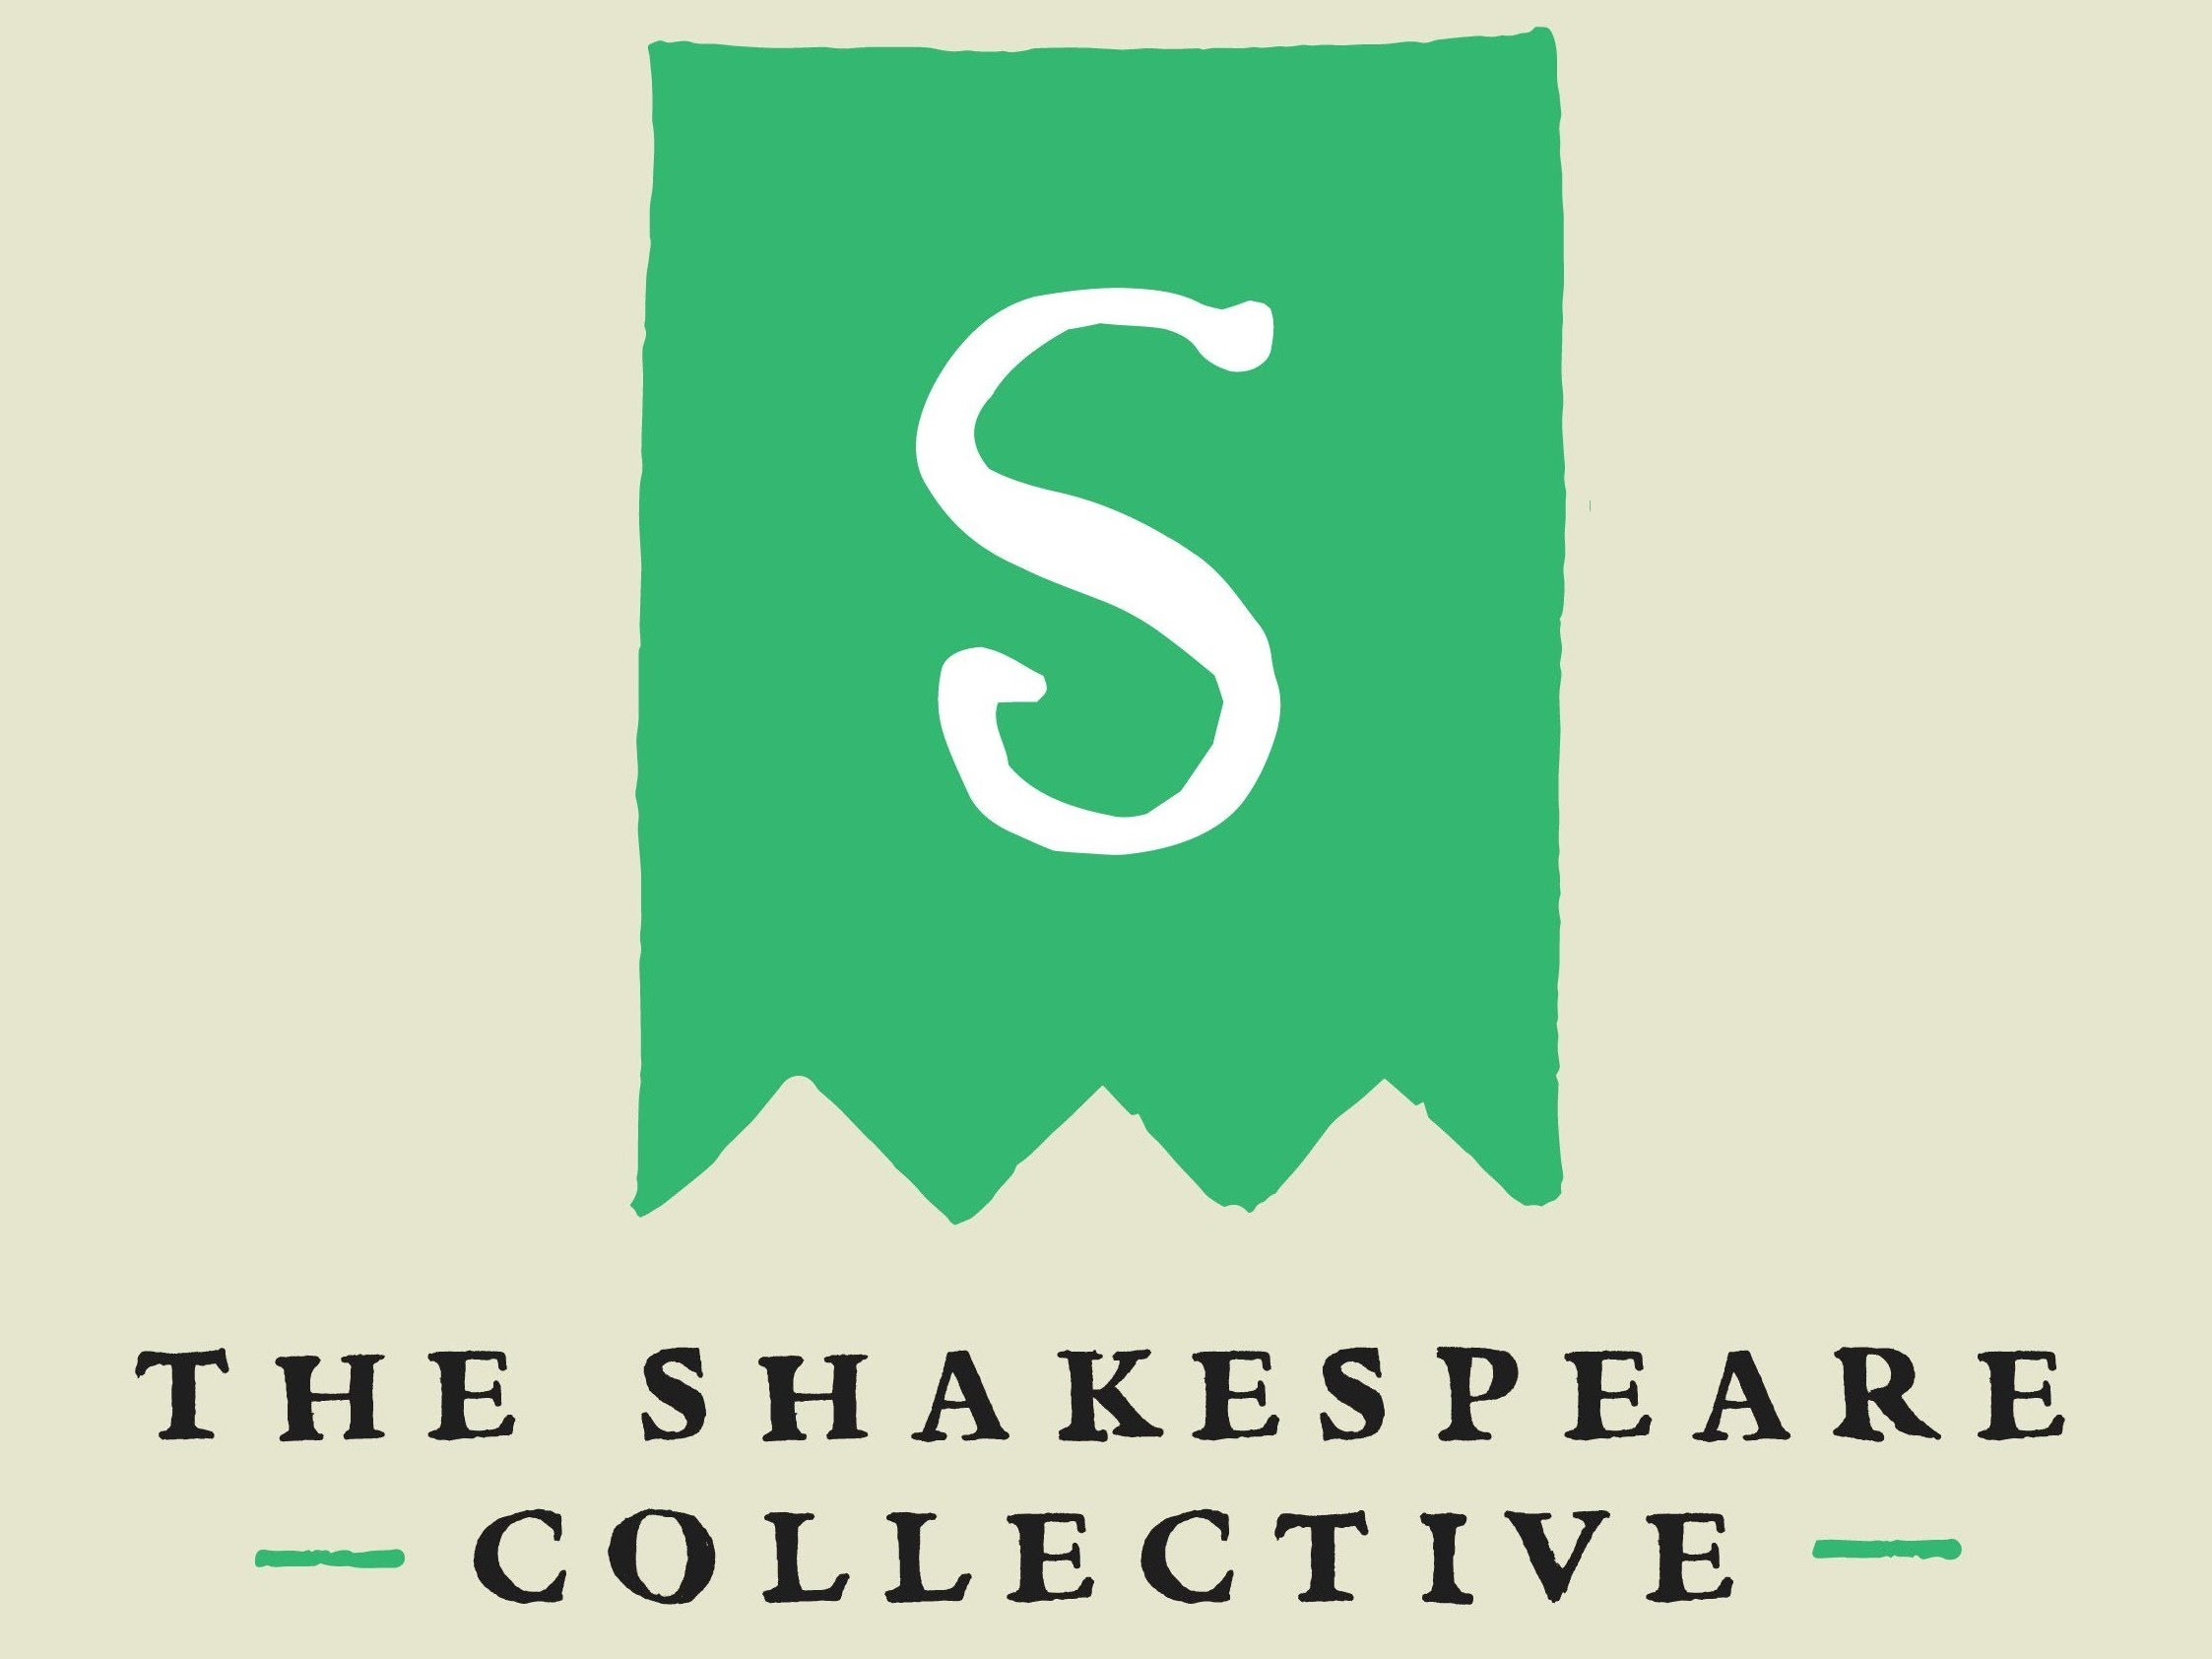 THE SHAKESPEARE COLLECTIVE